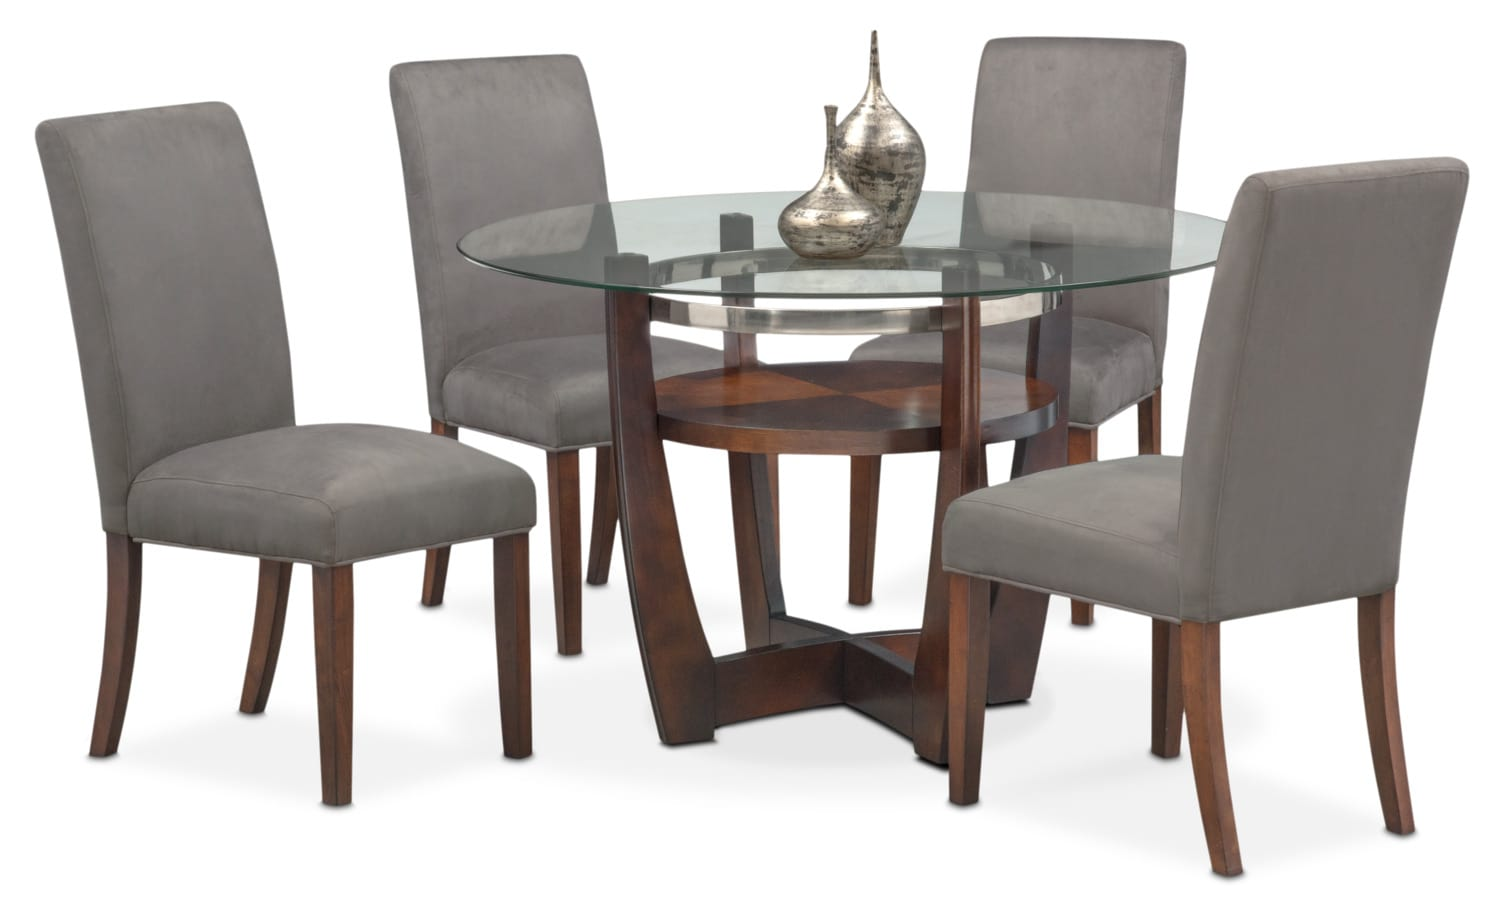 Alcove Table and 4 Side Chairs - Gray and Merlot